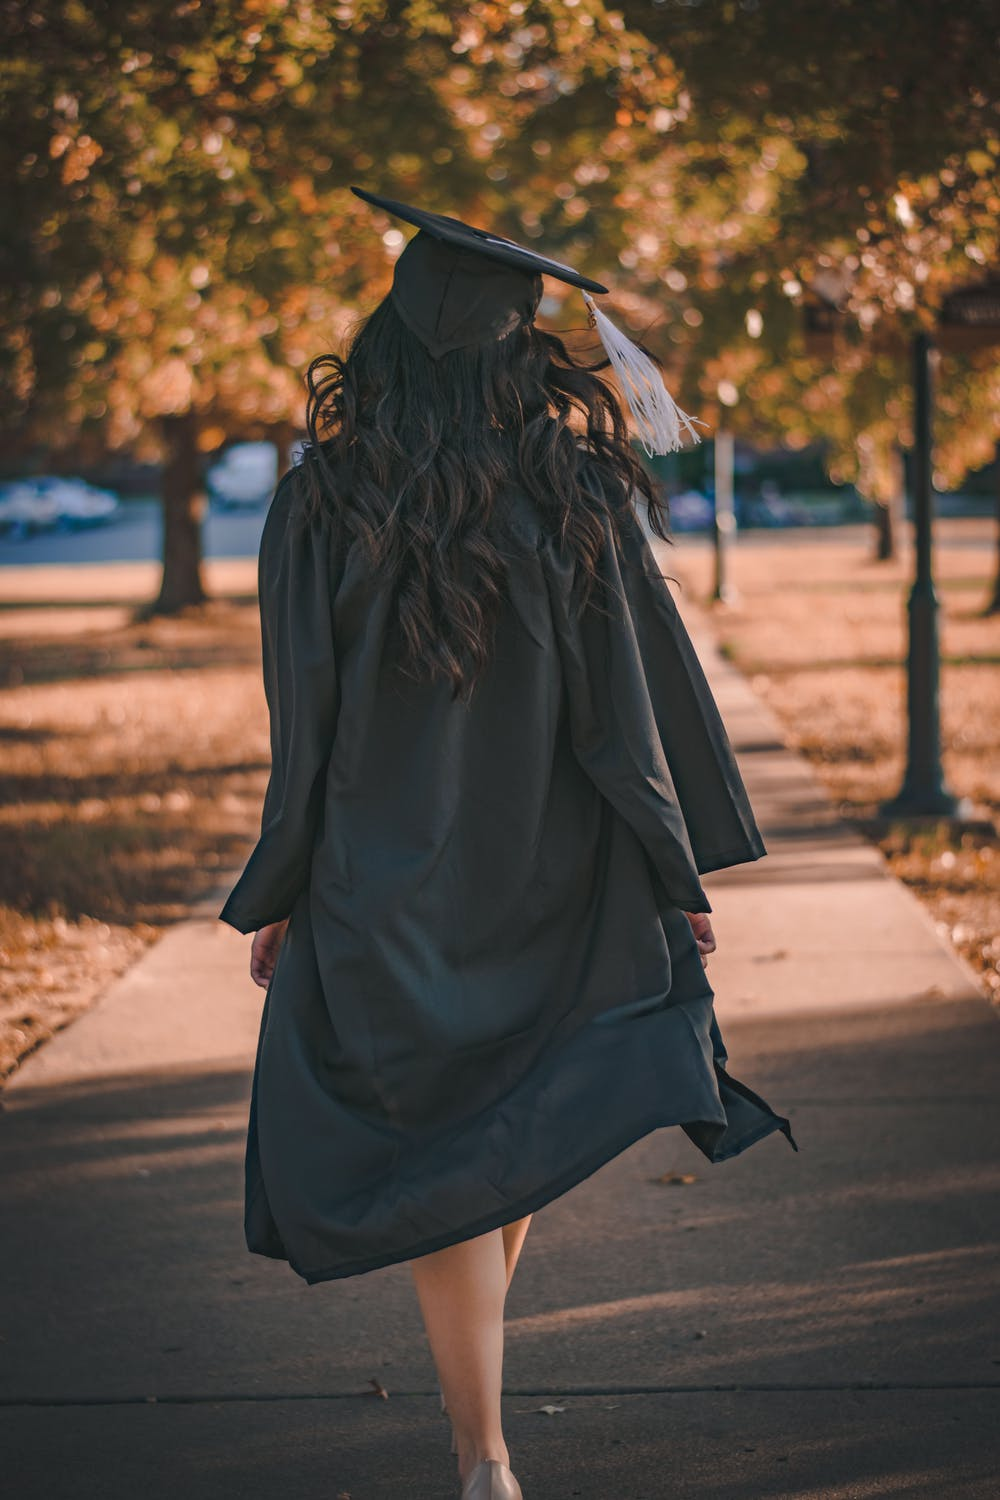 image of a girl in a graduation gown